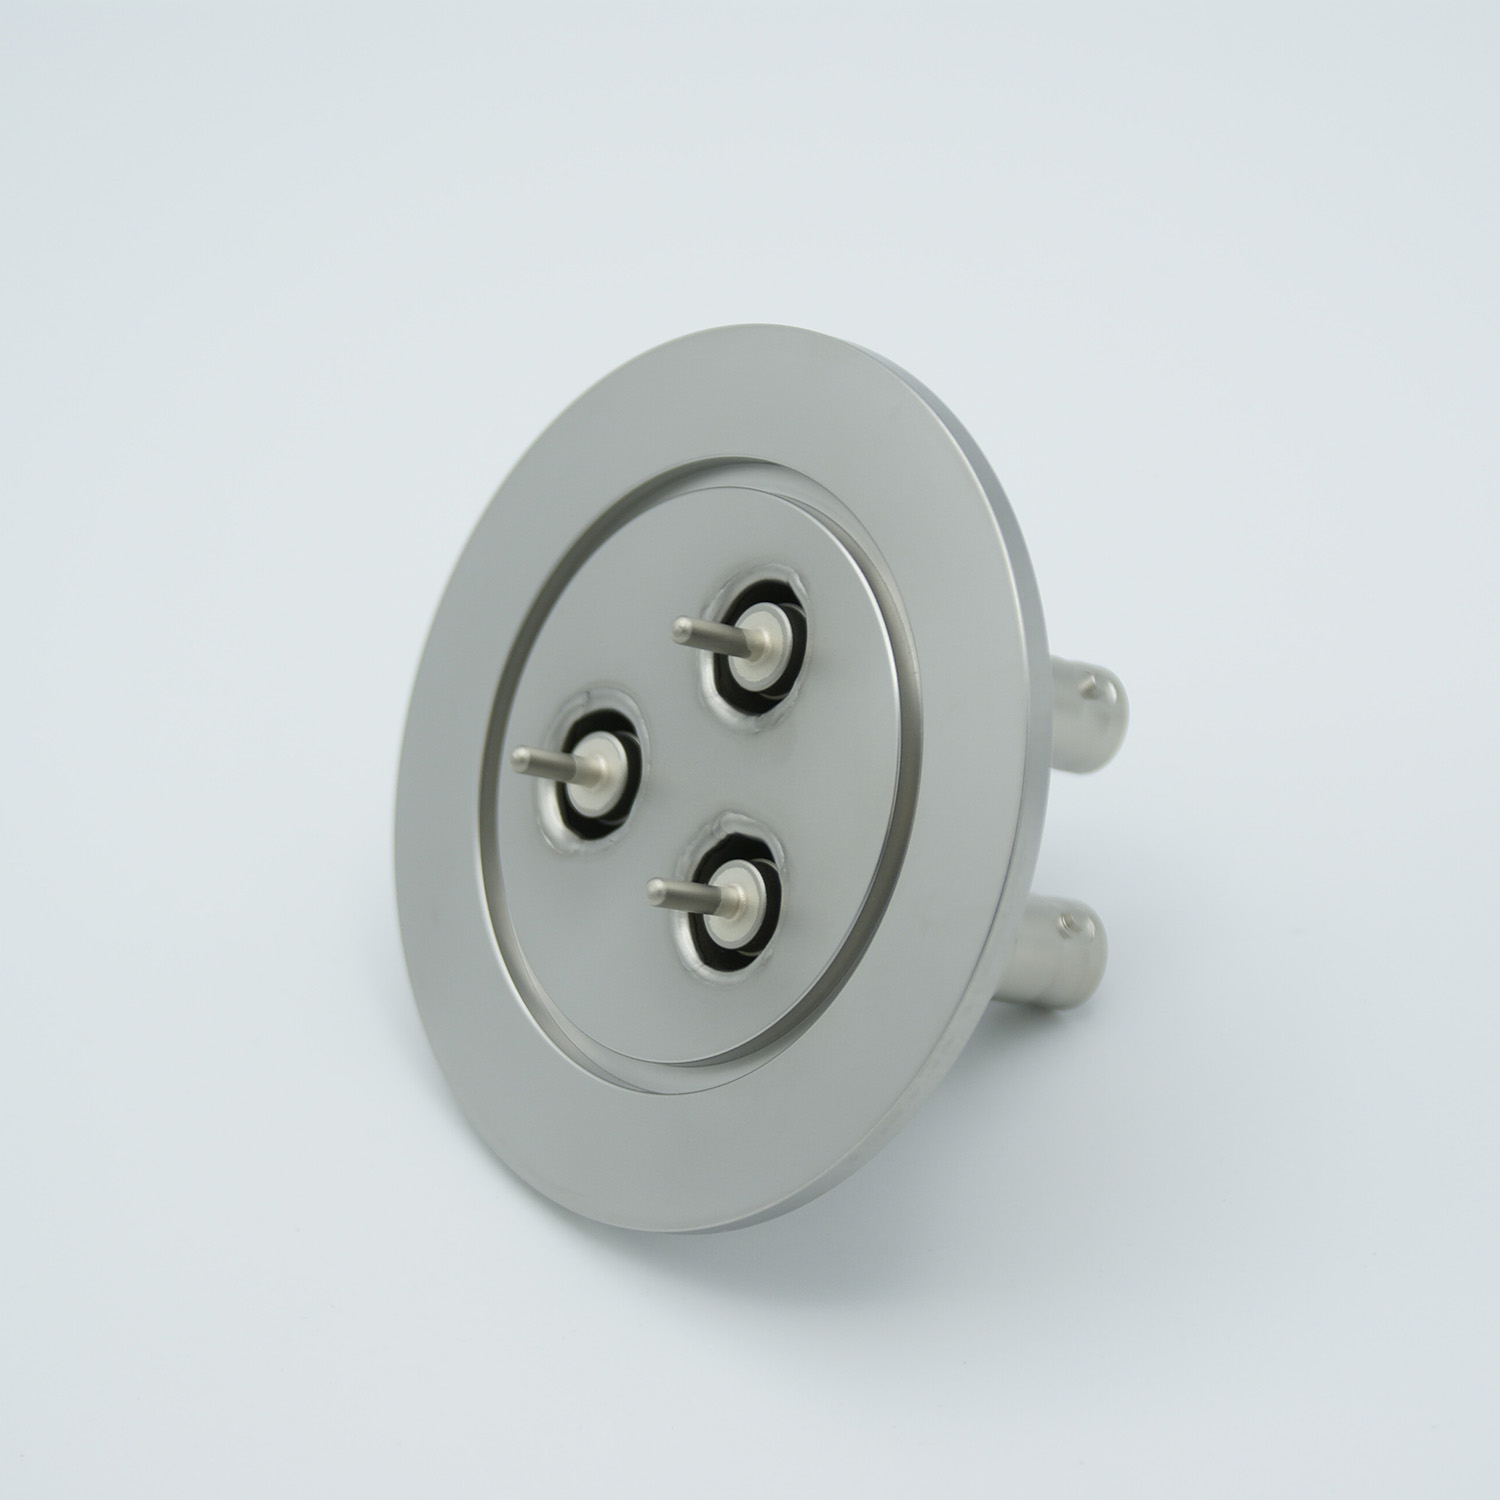 3 of grounded shield recessed SHV-5 Amp 5000 VDC feedthrough, air side connector included DN50KF